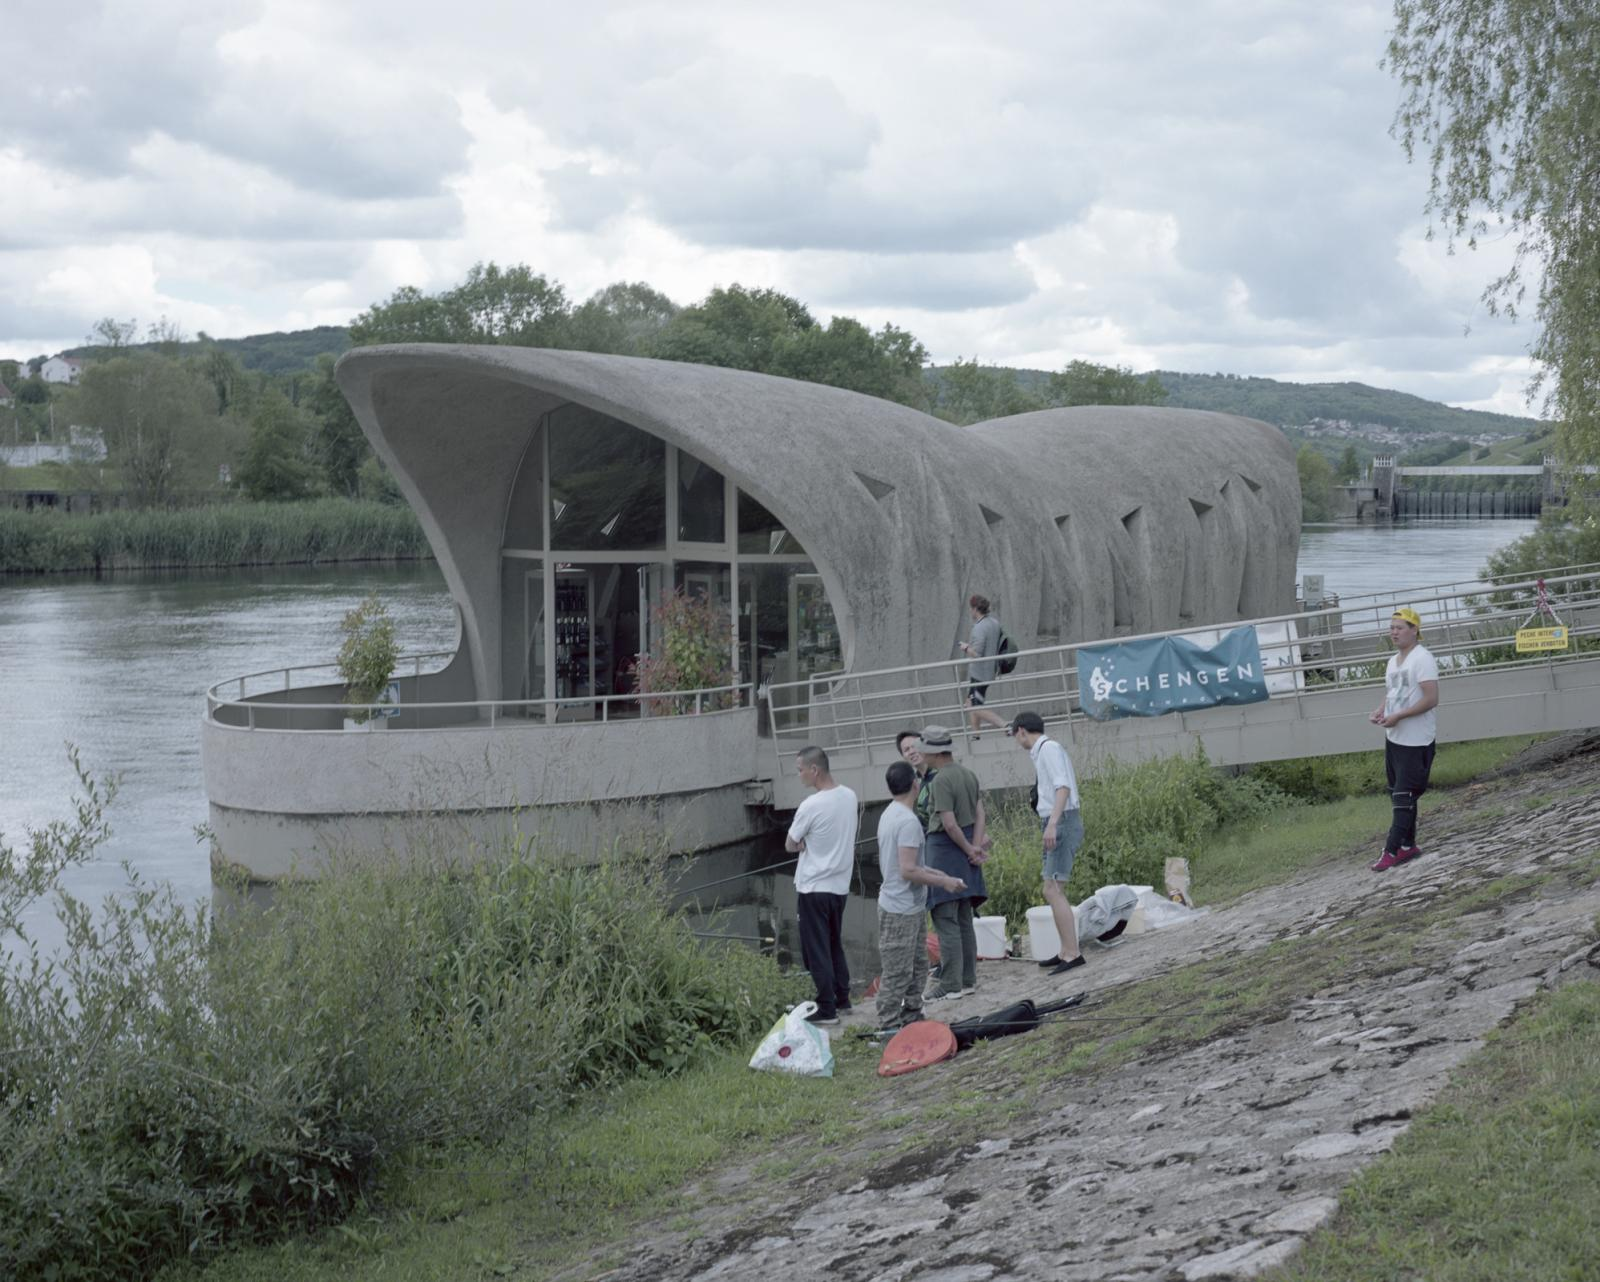 Shengen, Luxemburg. Asians fish nearby the European Museum Information point that celebrate the Shengen Treaty. The Shengen Treaty was one of the goals of the European Union Country consisting in the elimination of the borders within the EU.